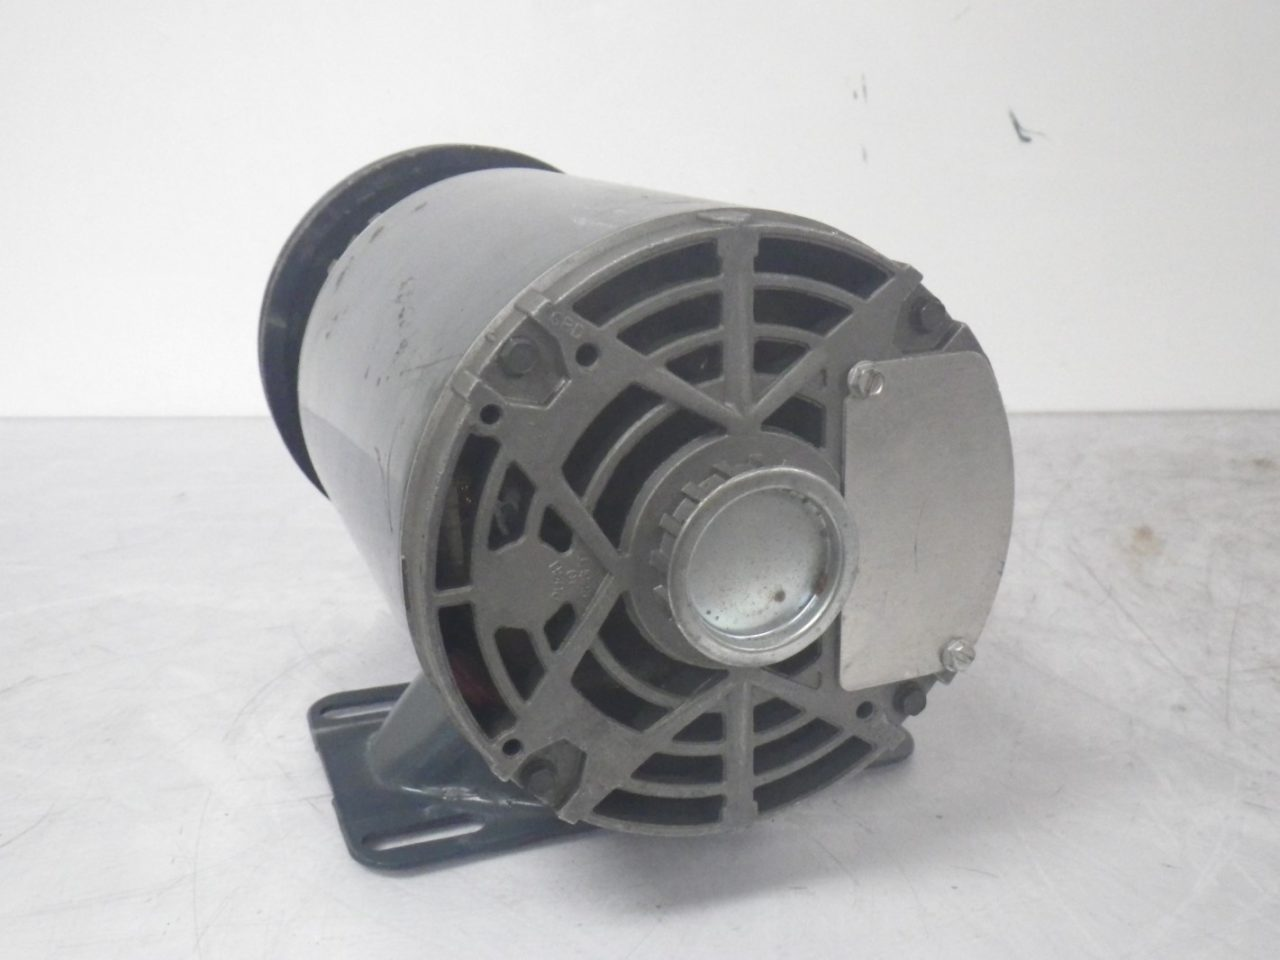 IMGP65595K36MN4B 160 58B GE Motor With LOVEJOY Pulley Type 160 58b 12hp 208-230460v 1725rpm (5)